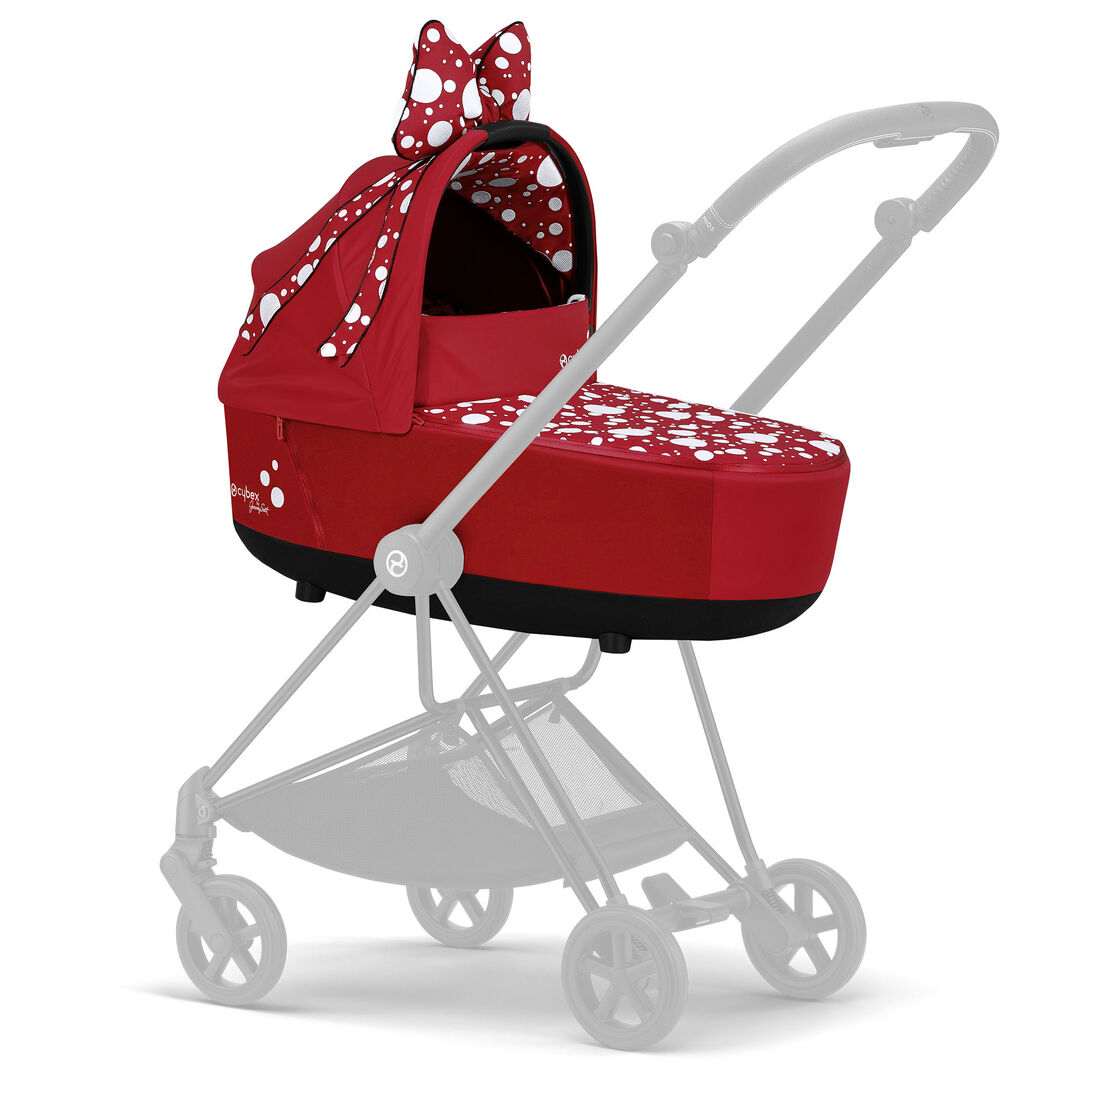 CYBEX Mios Lux Carry Cot - Petticoat Red in Petticoat Red large image number 4